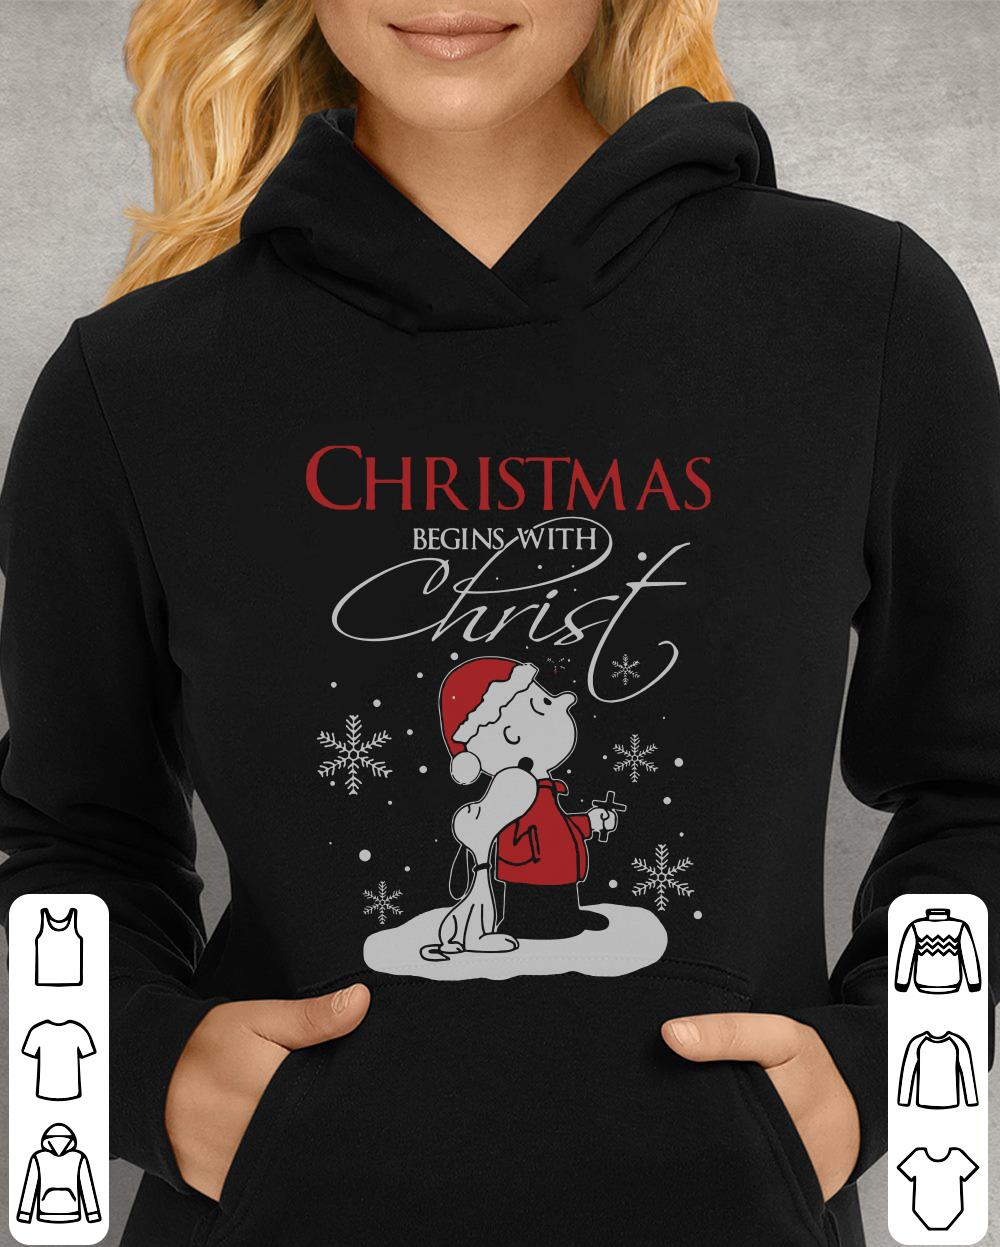 https://unicornshirts.net/images/2018/11/Snoopy-and-Charlie-Brown-christmas-begins-with-christ-shirt_4.jpg